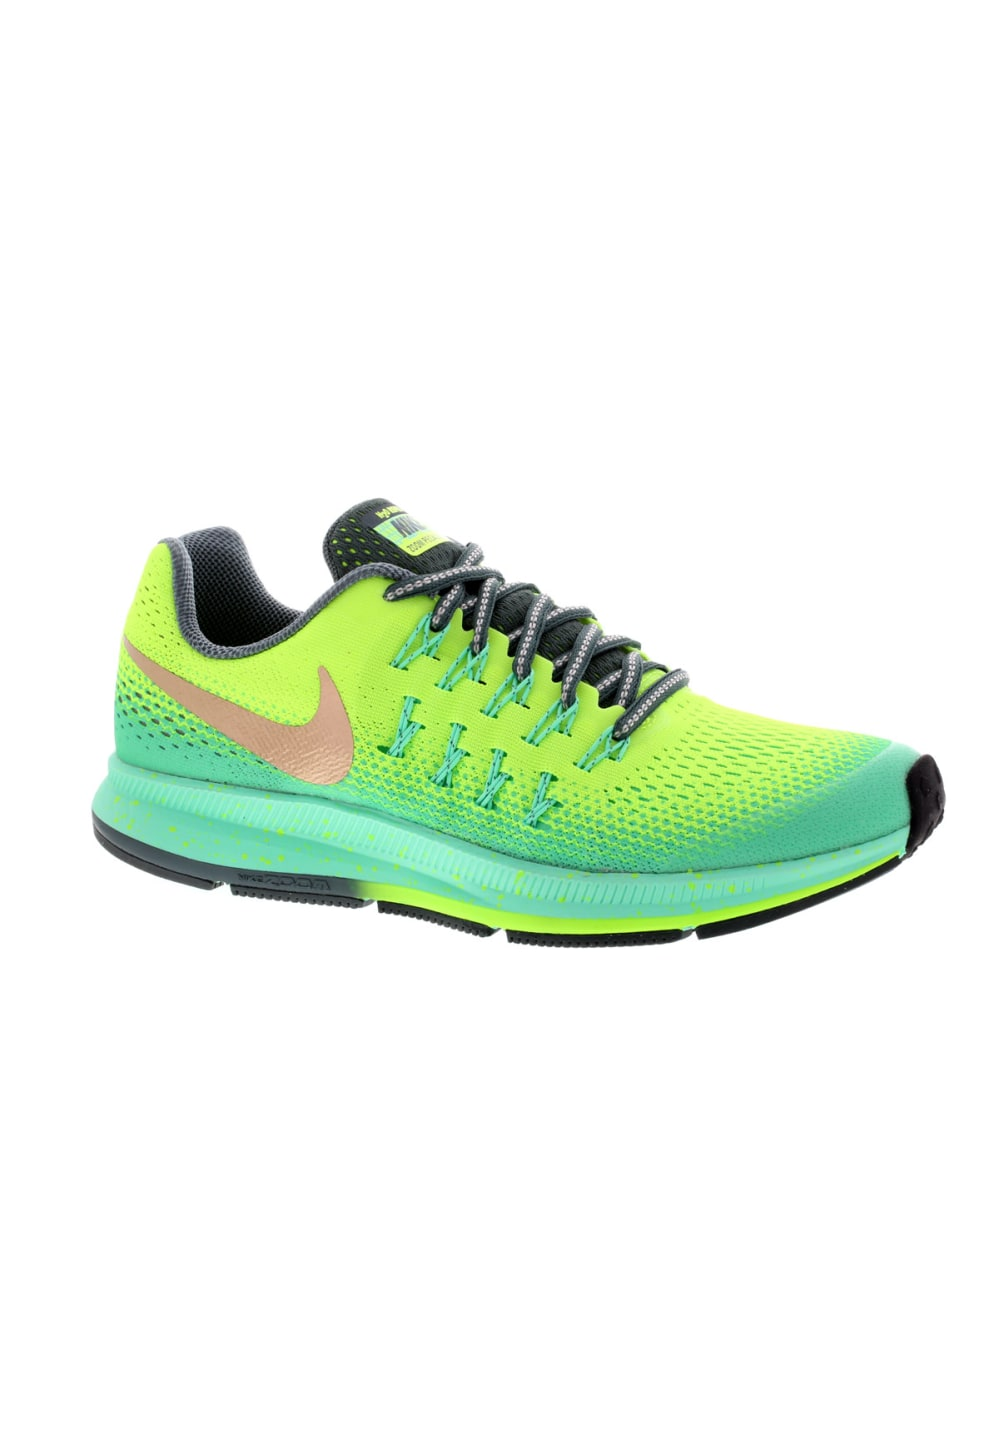 Nike Air Zoom Pegasus 33 Shield GS - Laufschuhe - Blau